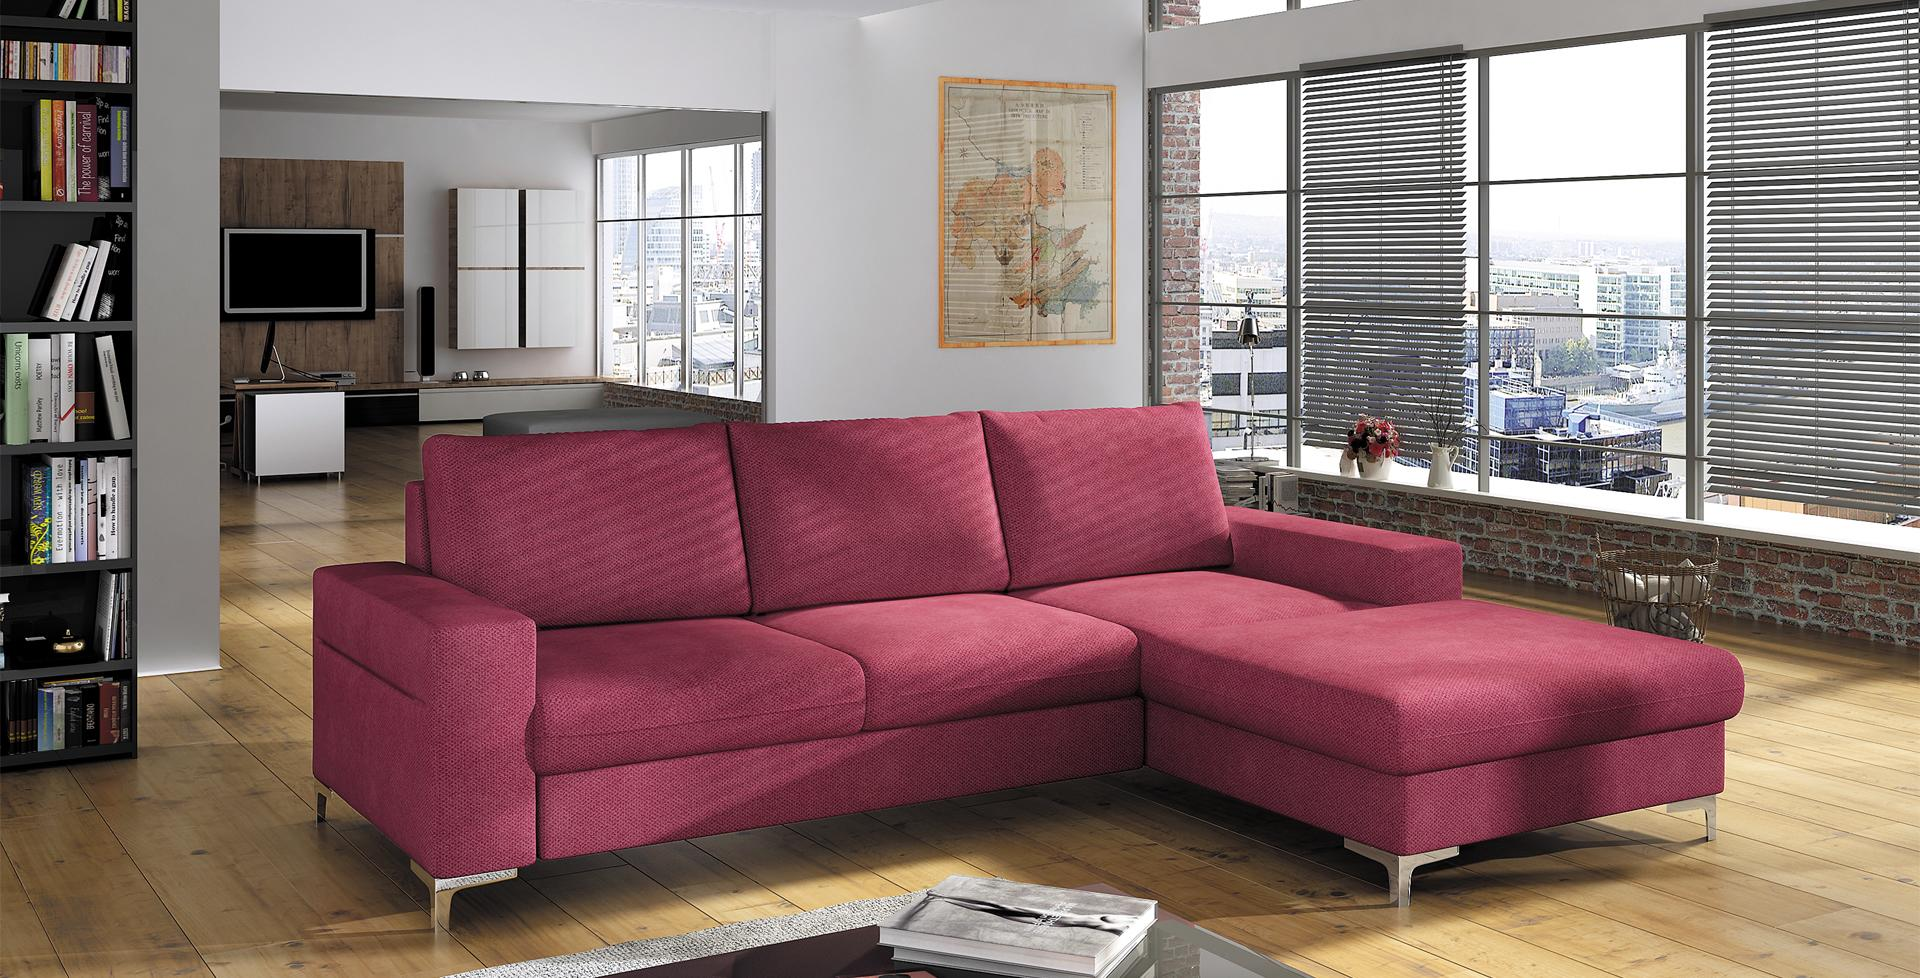 sofa schlafsofa designer sofa mit bettfunktion bettkasten ecksofa couch neu lens www. Black Bedroom Furniture Sets. Home Design Ideas